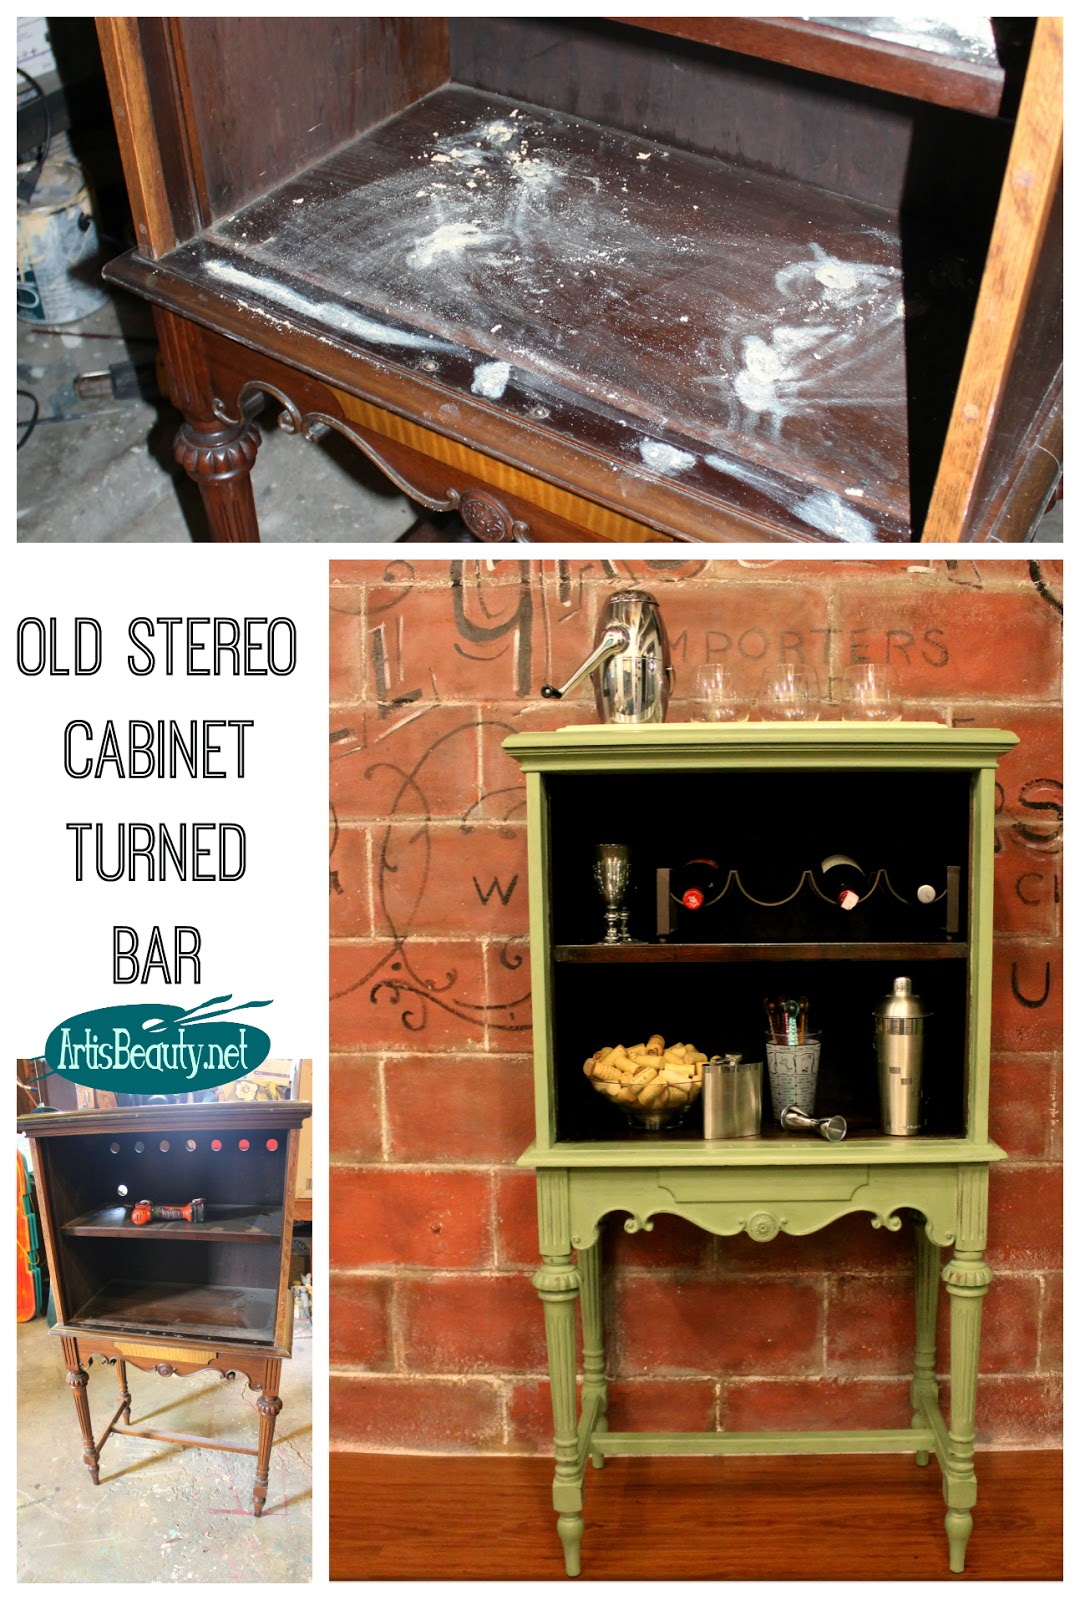 likable tall wine oa cheerful skinny vint together liquor bar repurposed hutch kitchen modish storage decorative hypnotizing flagrant interior with choosing a design as rack stereo vintage cabinet